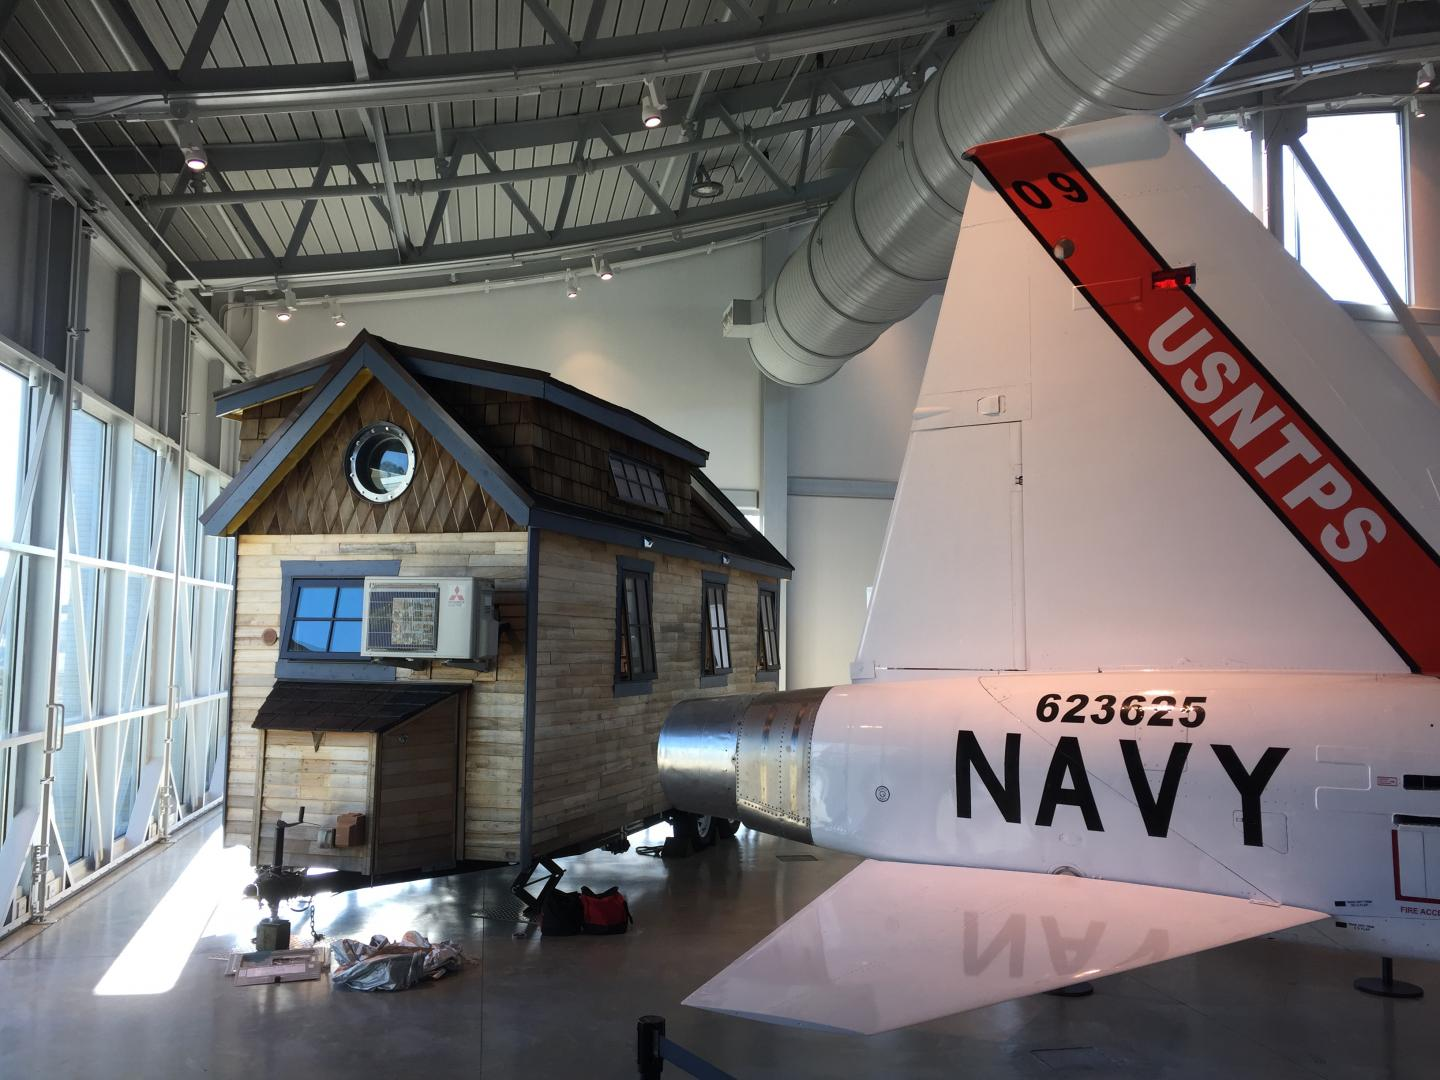 SMCM Tiny House in display at the Patuxent River Naval Air Museum